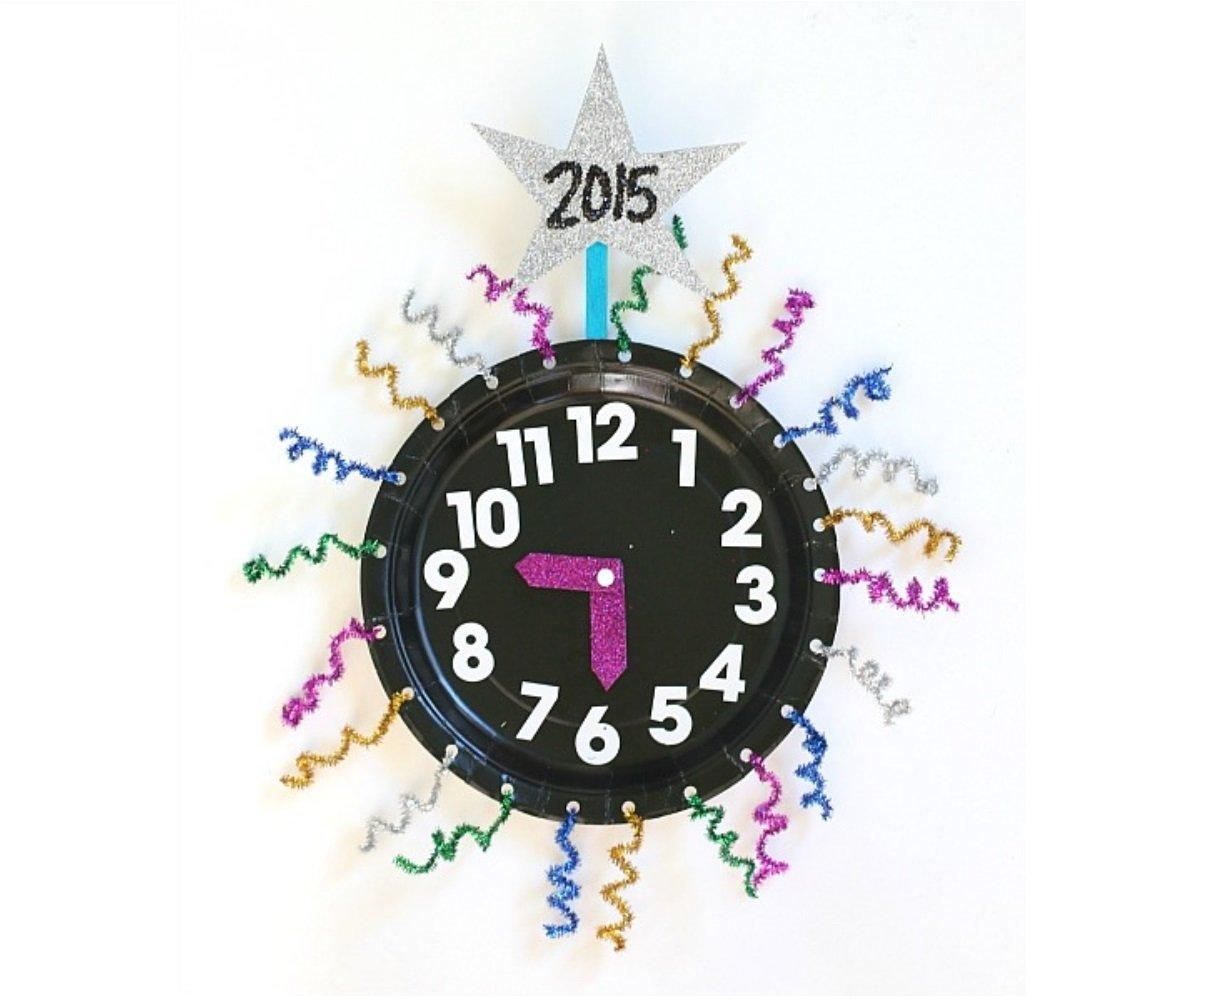 18 Crafts To Make New Year's Eve Fun For The Kids